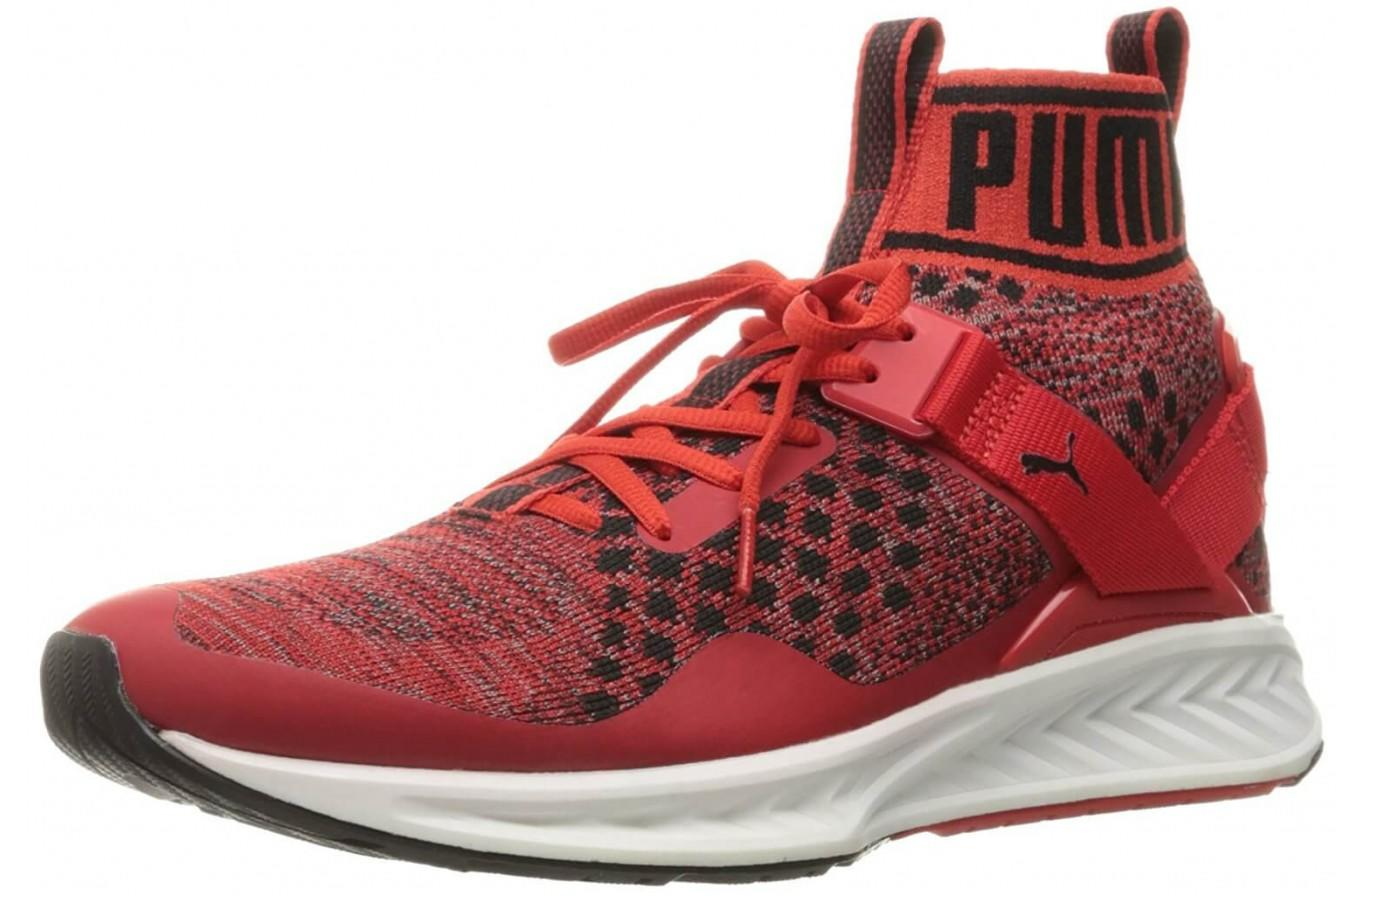 bc201e4f1340 the Puma Ignite evoKnit is a stylish high top running shoe ...